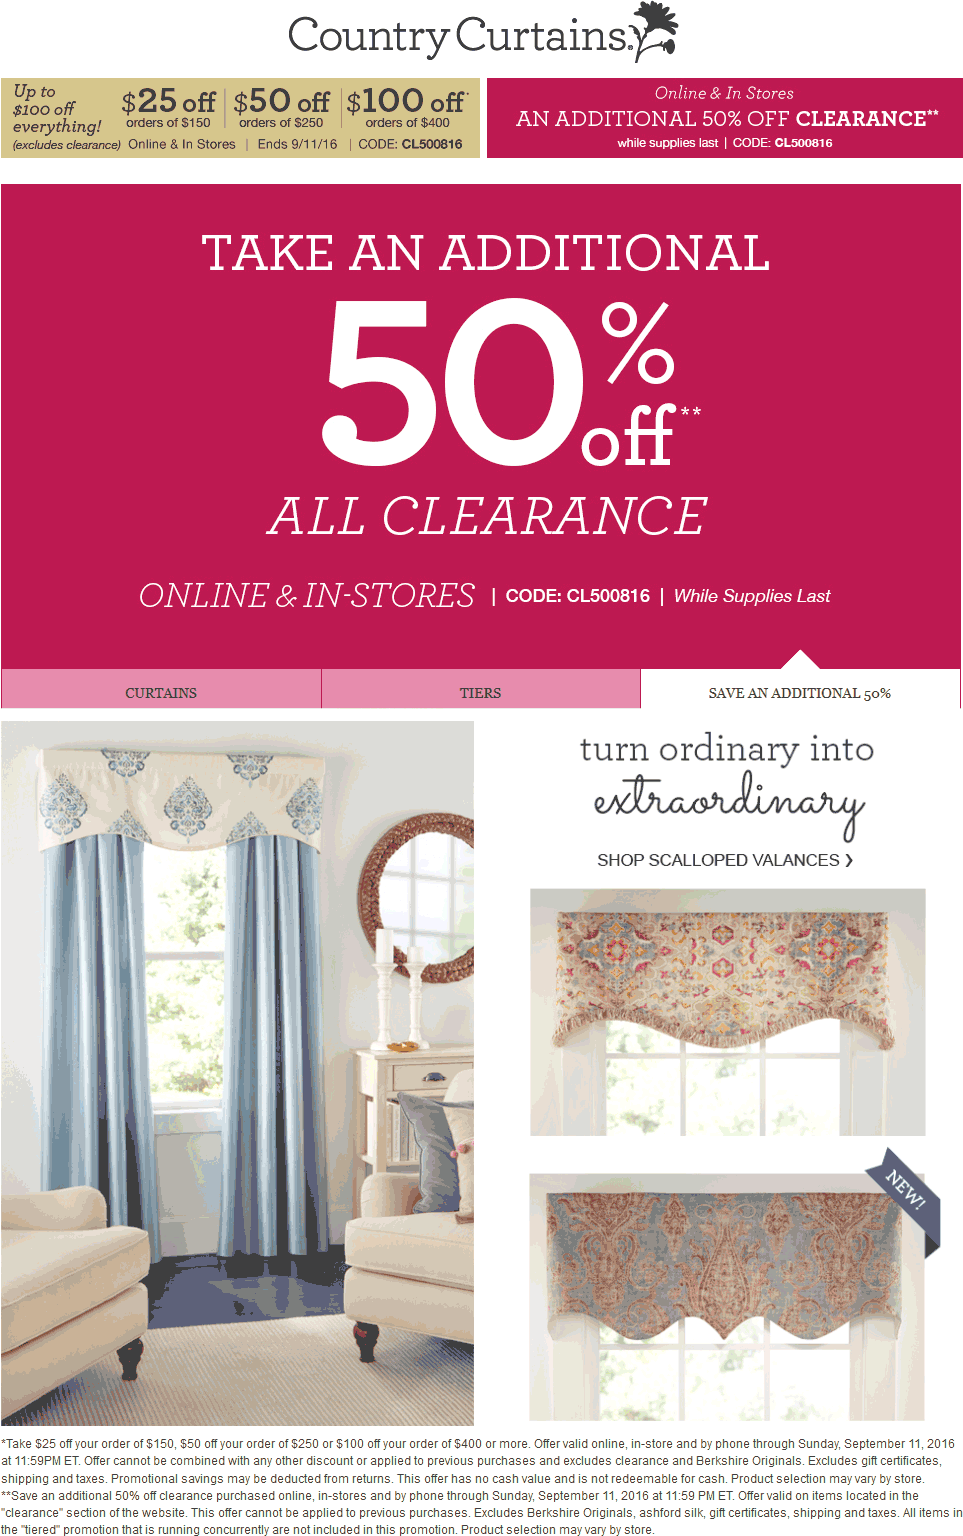 Country Curtains Coupon February 2017 $25 off $150 & more + extra 50% off clearance at Country Curtains, or online via promo code CL500816